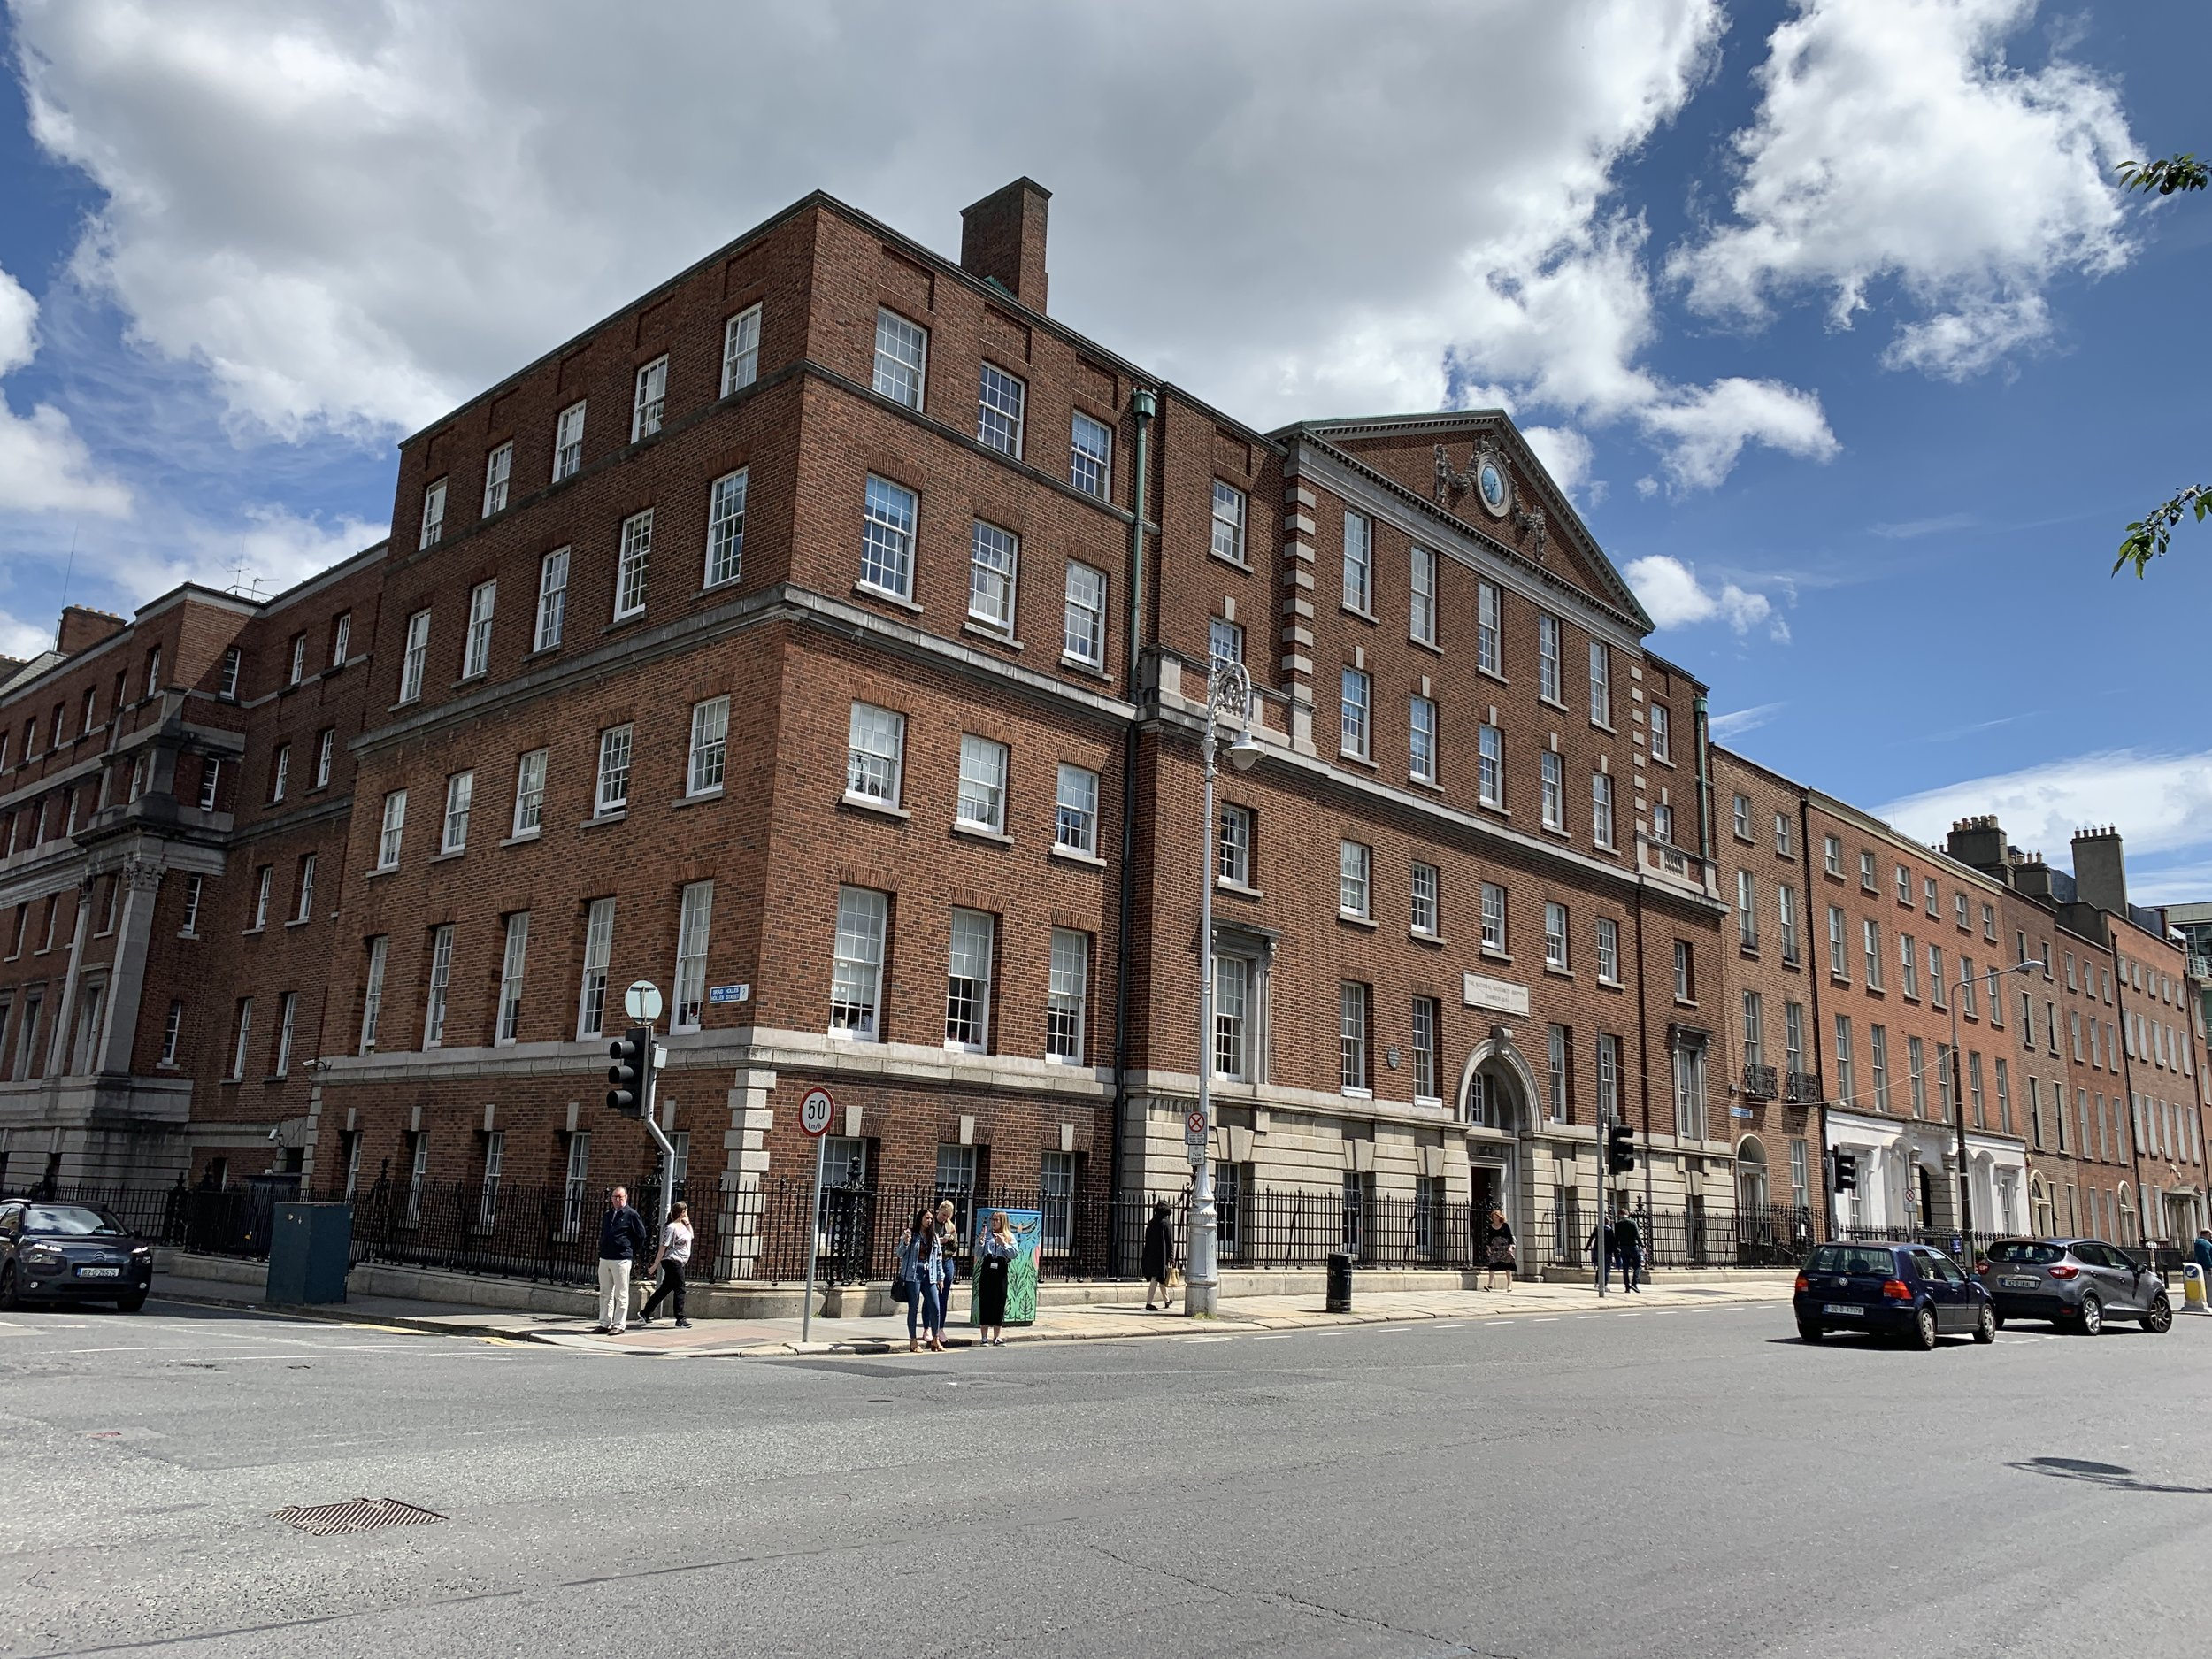 The Holles Street Maternity Hospital